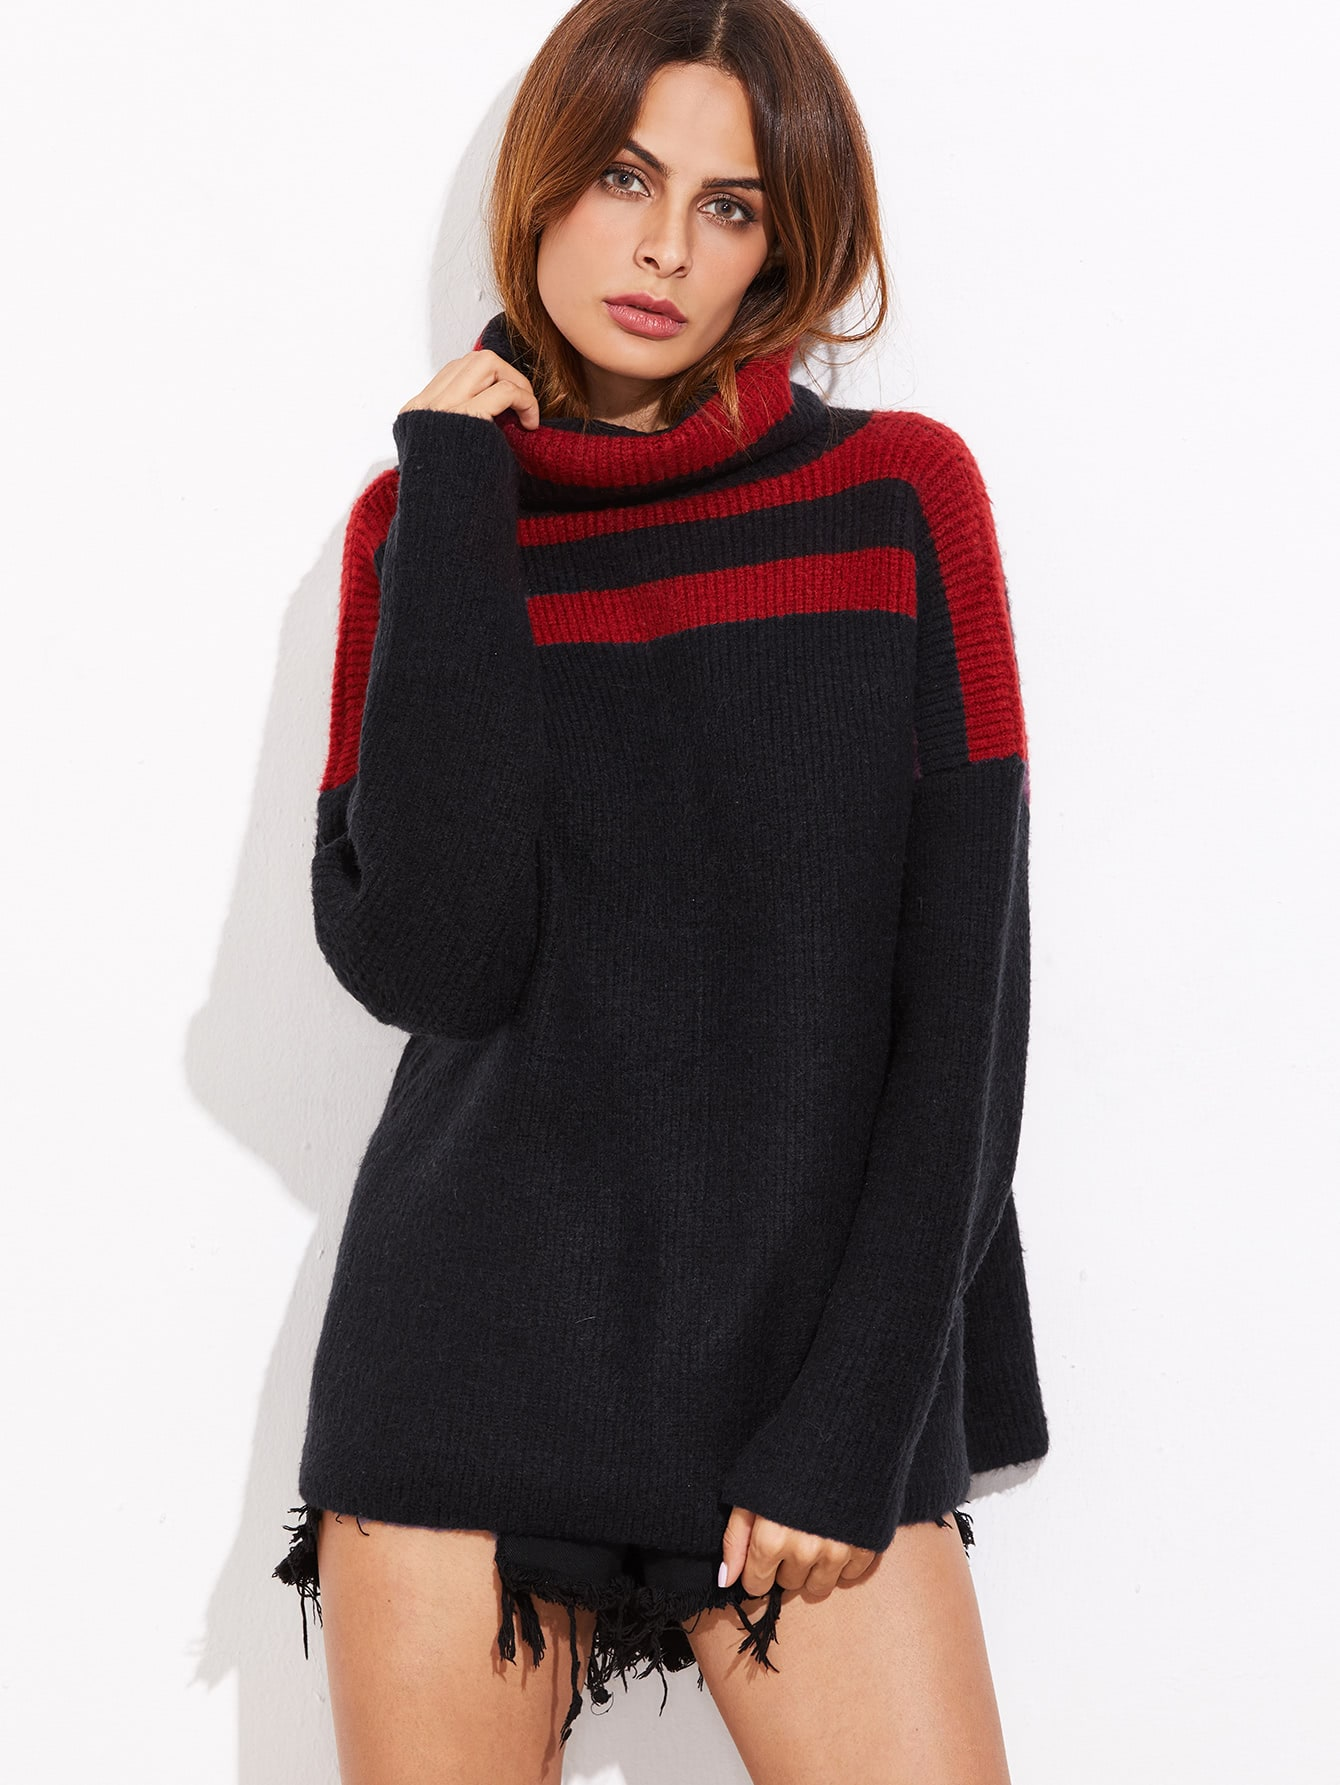 Color Block Ribbed Knit Turtleneck Sweater sweater161025456